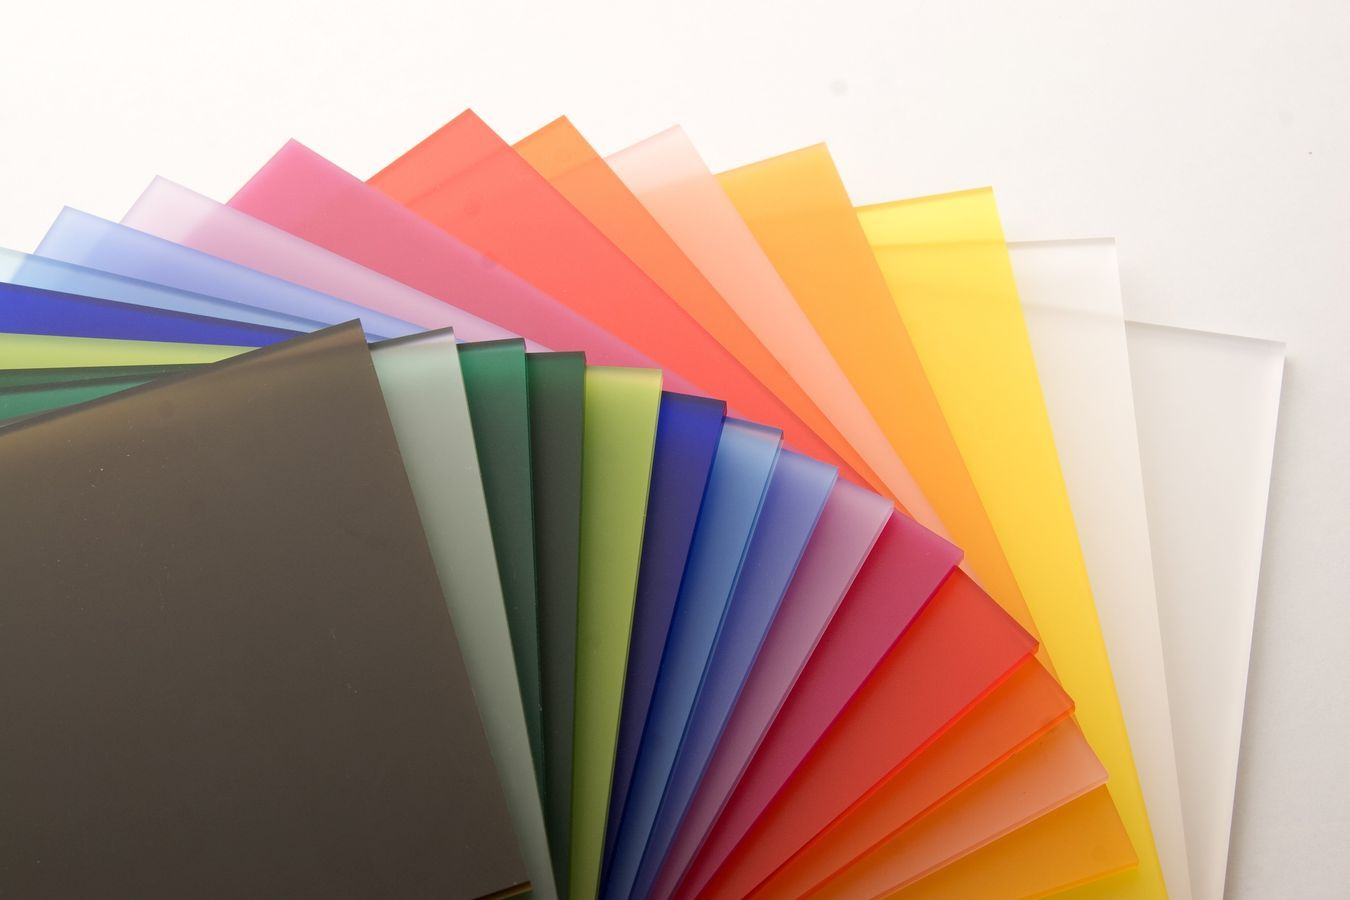 The Top Advantages Of Acrylic Plastic Acrylic Plastic Sheets Acrylic Sheets Acrylic Plastic